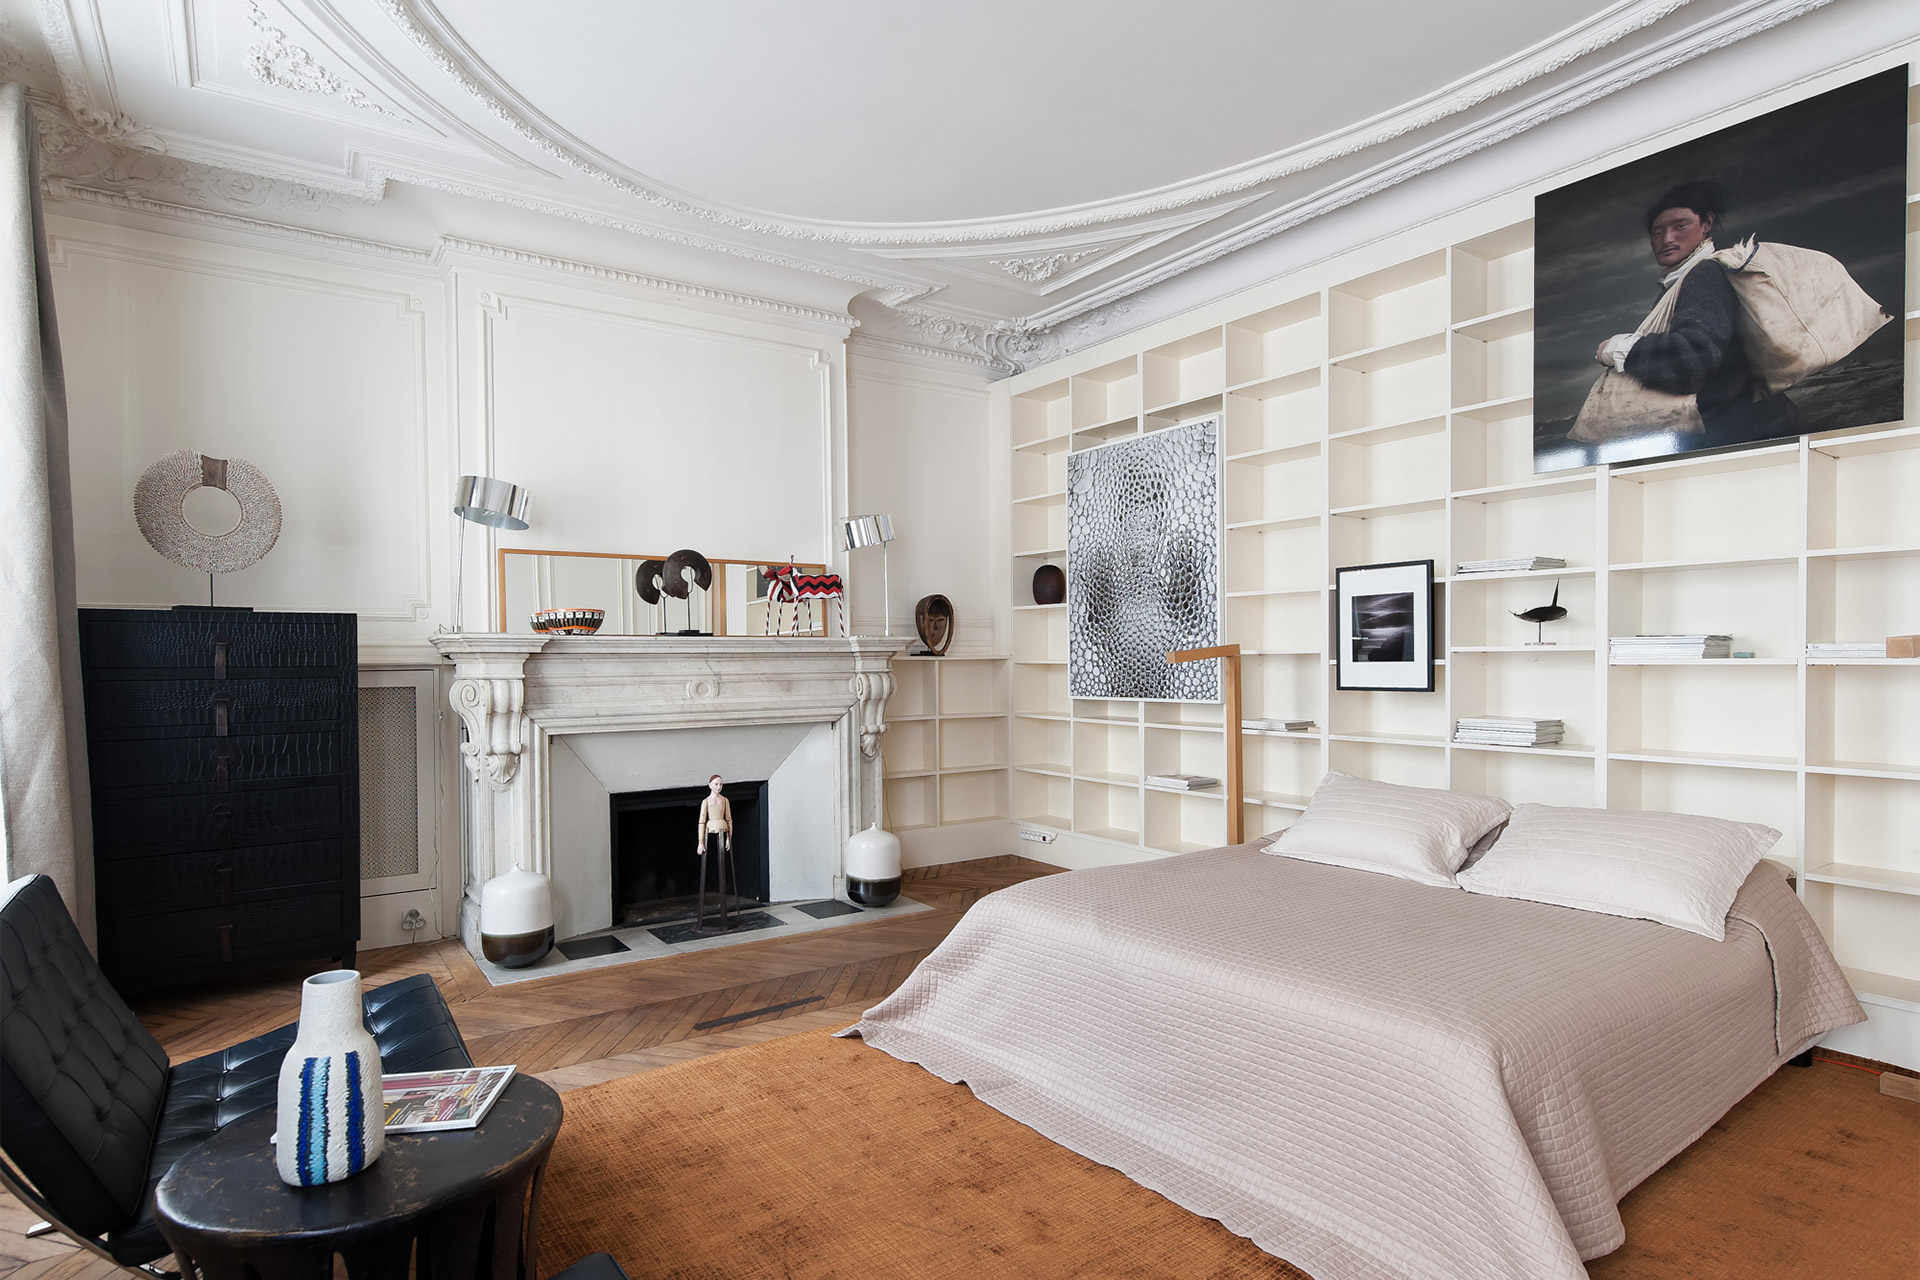 Stunning bedroom two with large French windows in the Cavailles Paris Perfect apartment